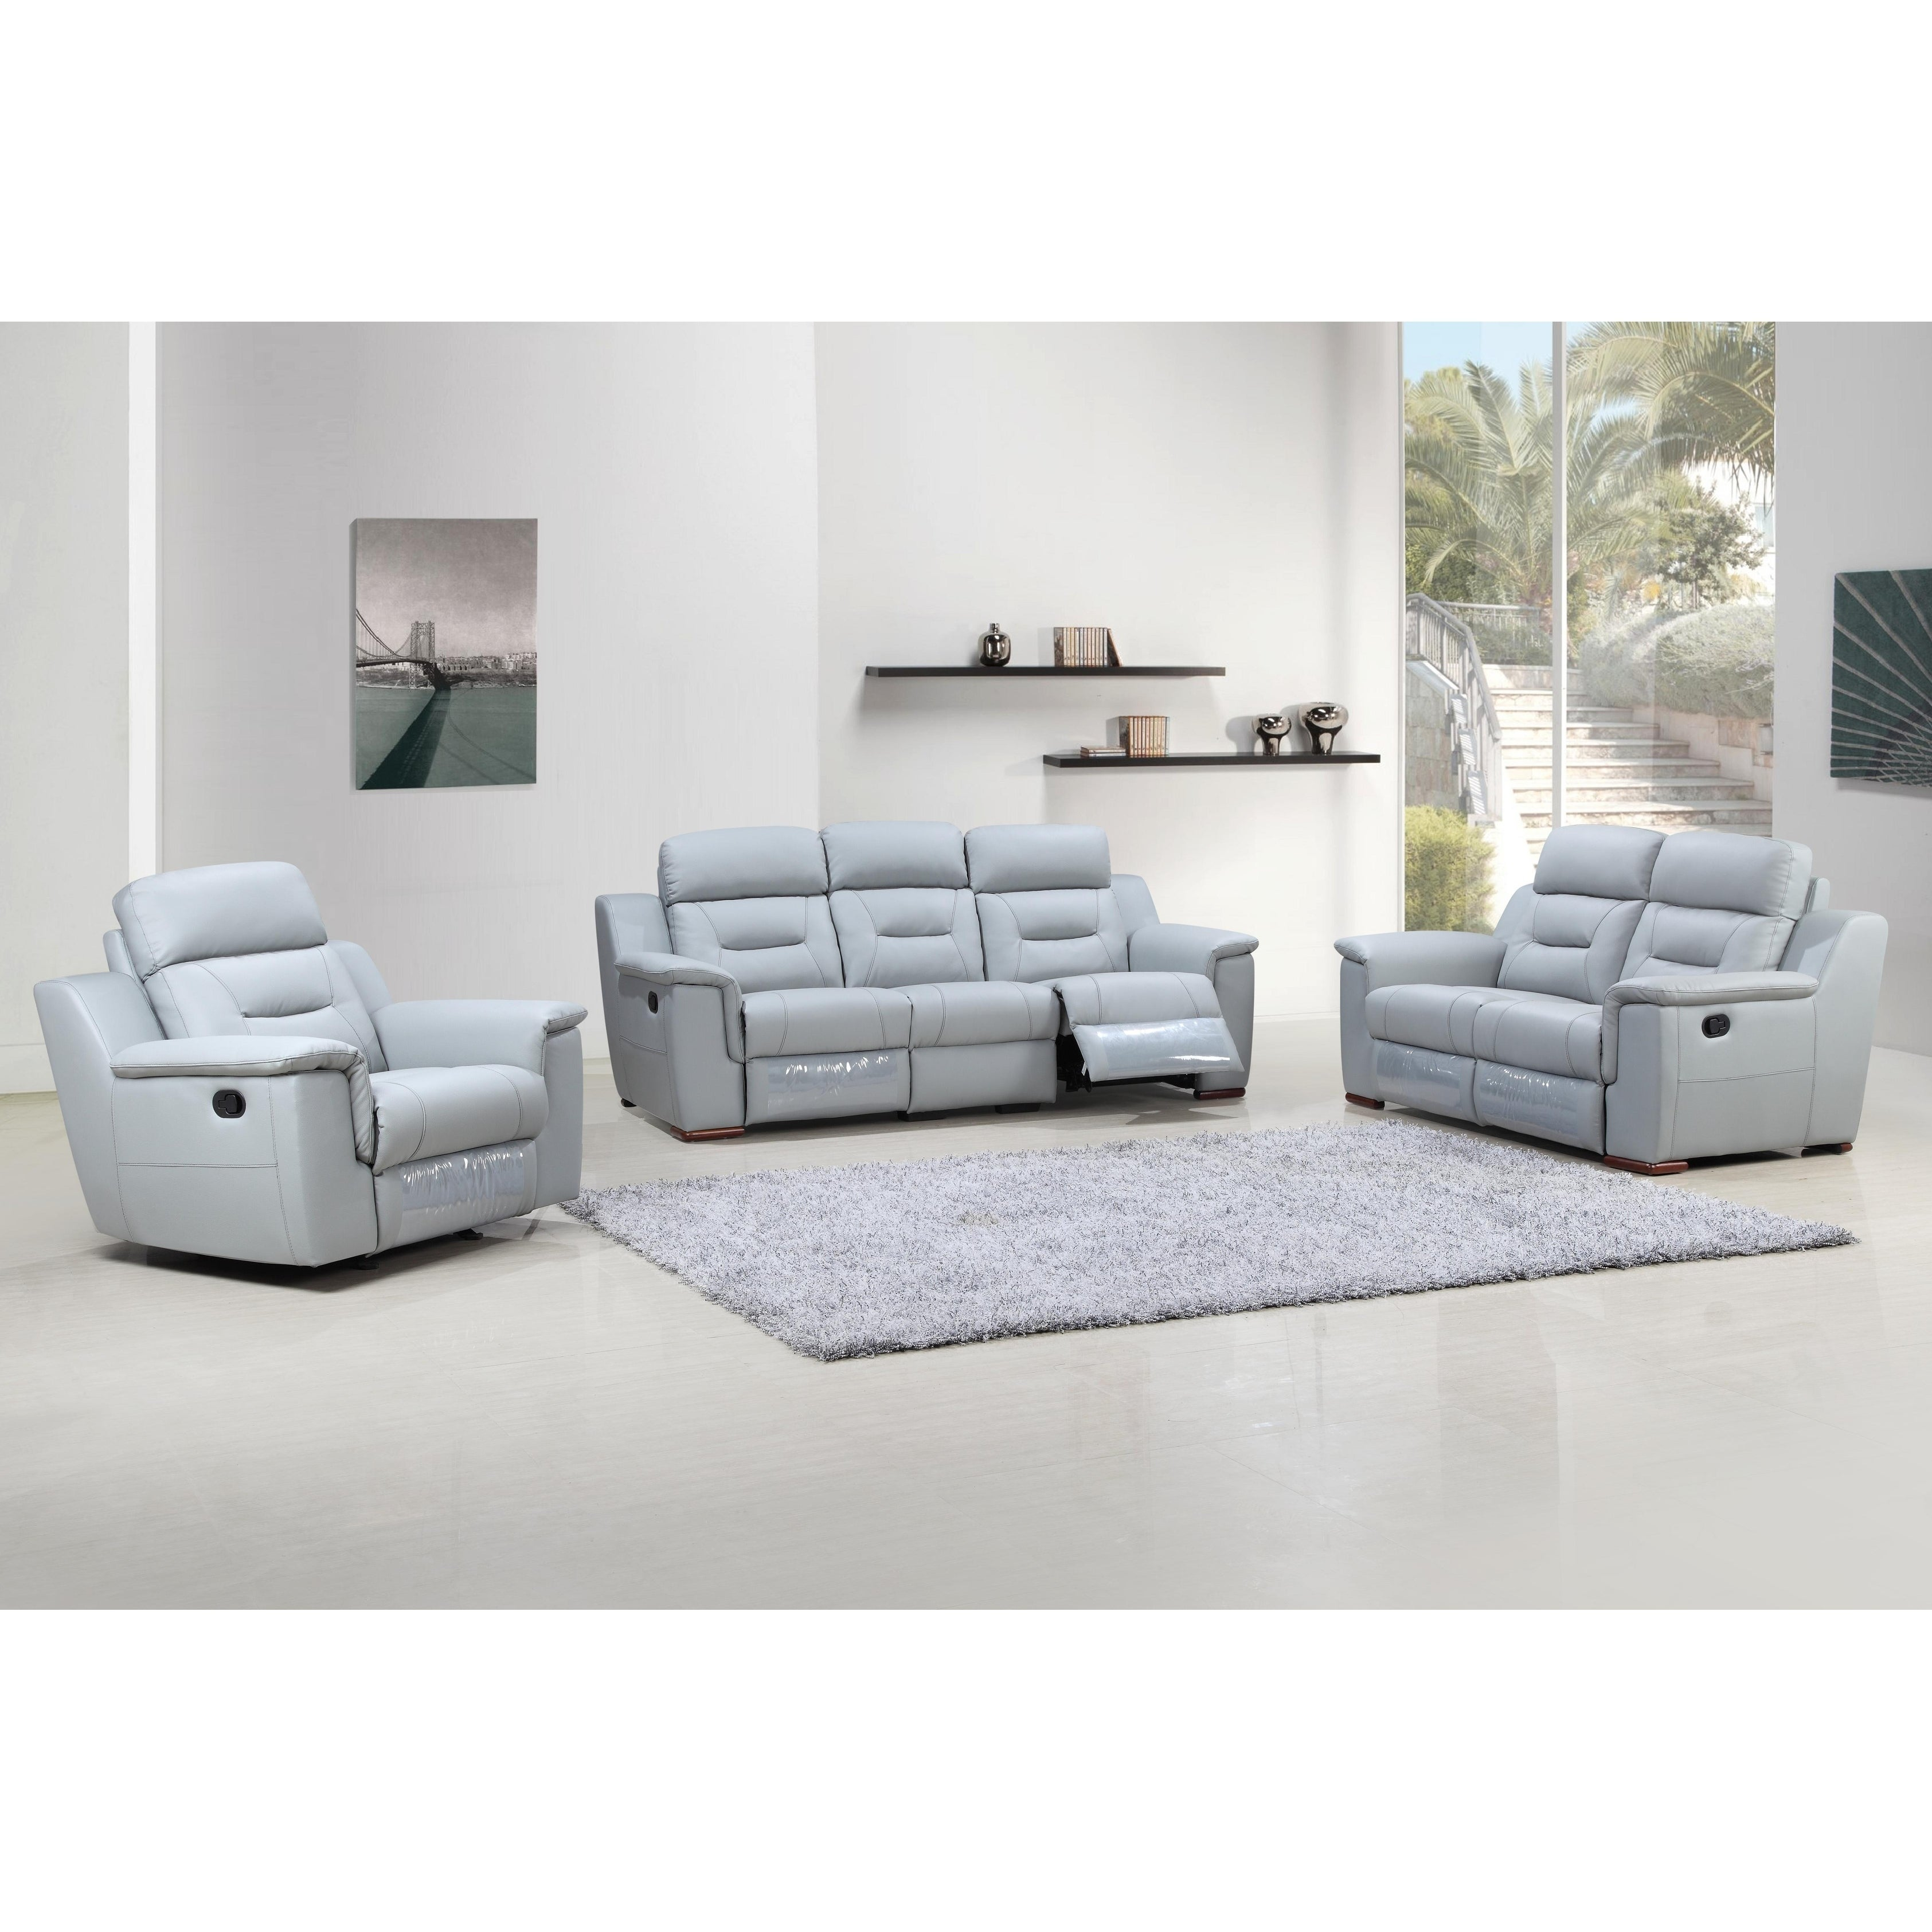 Walker Leather Air Upholstered 3 Piece Living Room Sofa Set - Free ...